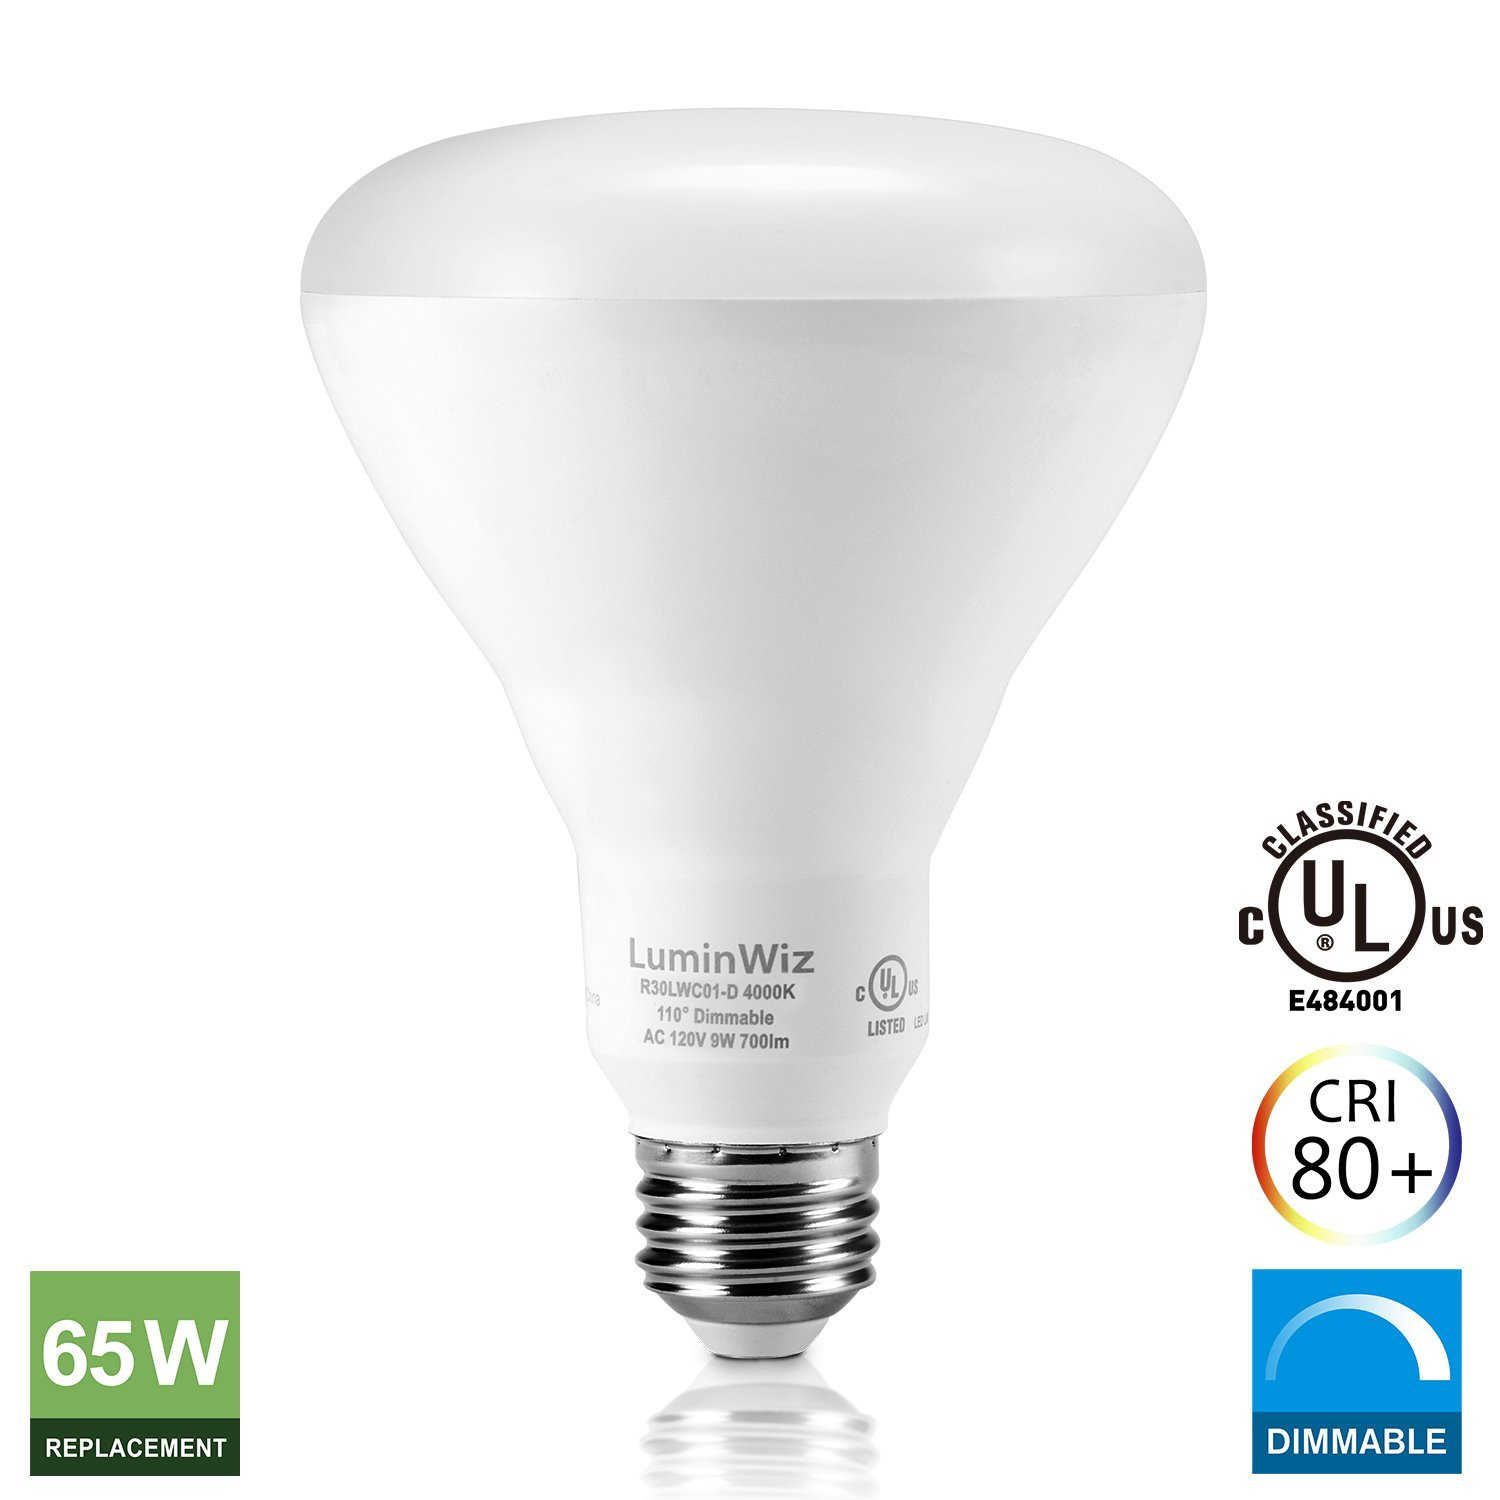 luminwiz 9w 4000k 700lm daylight white dimmable flood light bulb br30 led bulbs65w equivalent - Flood Light Bulbs